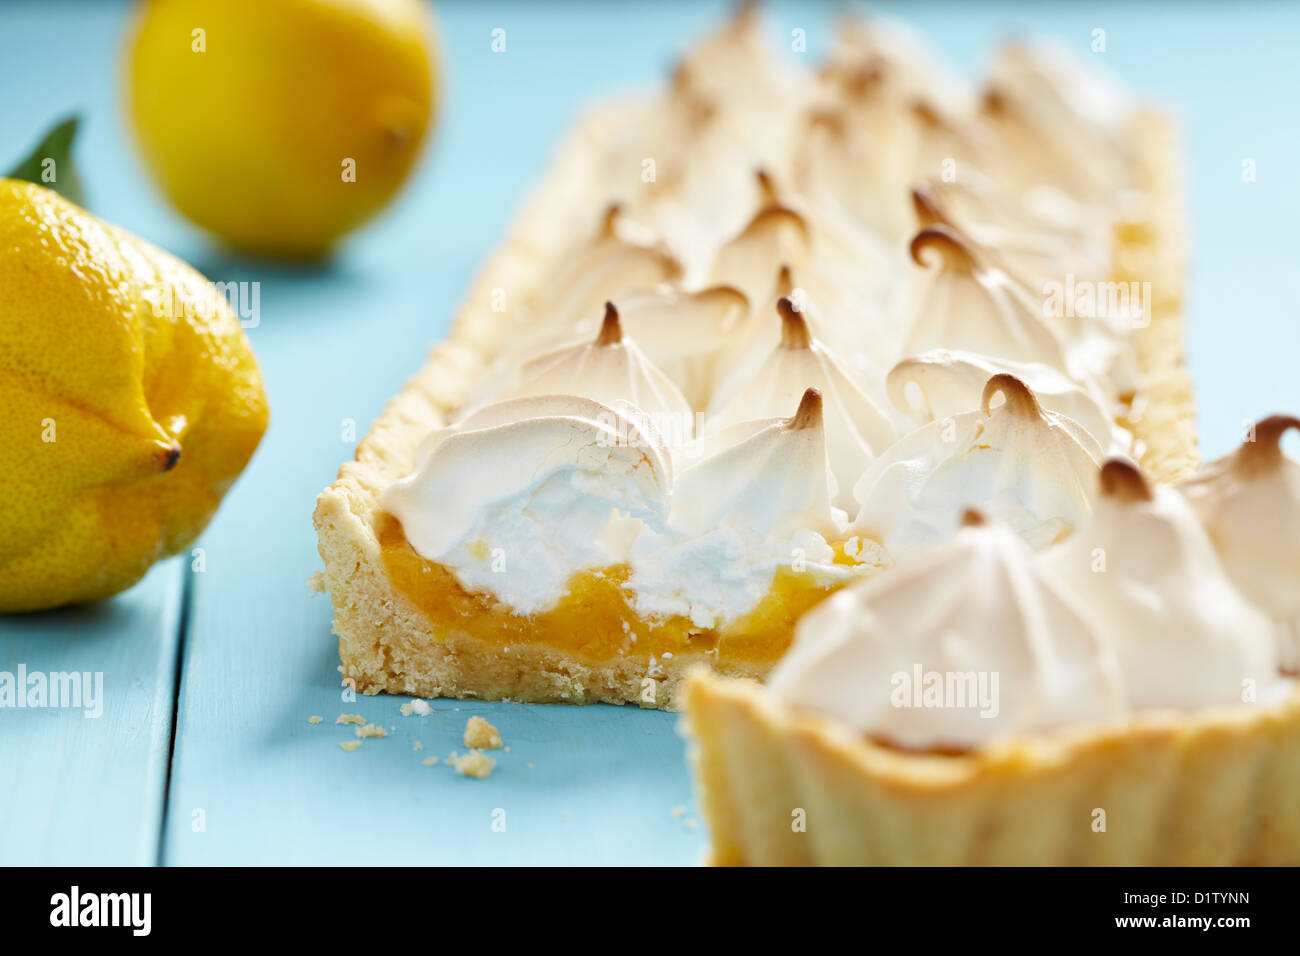 Close up of lemon meringue pie - Stock Image